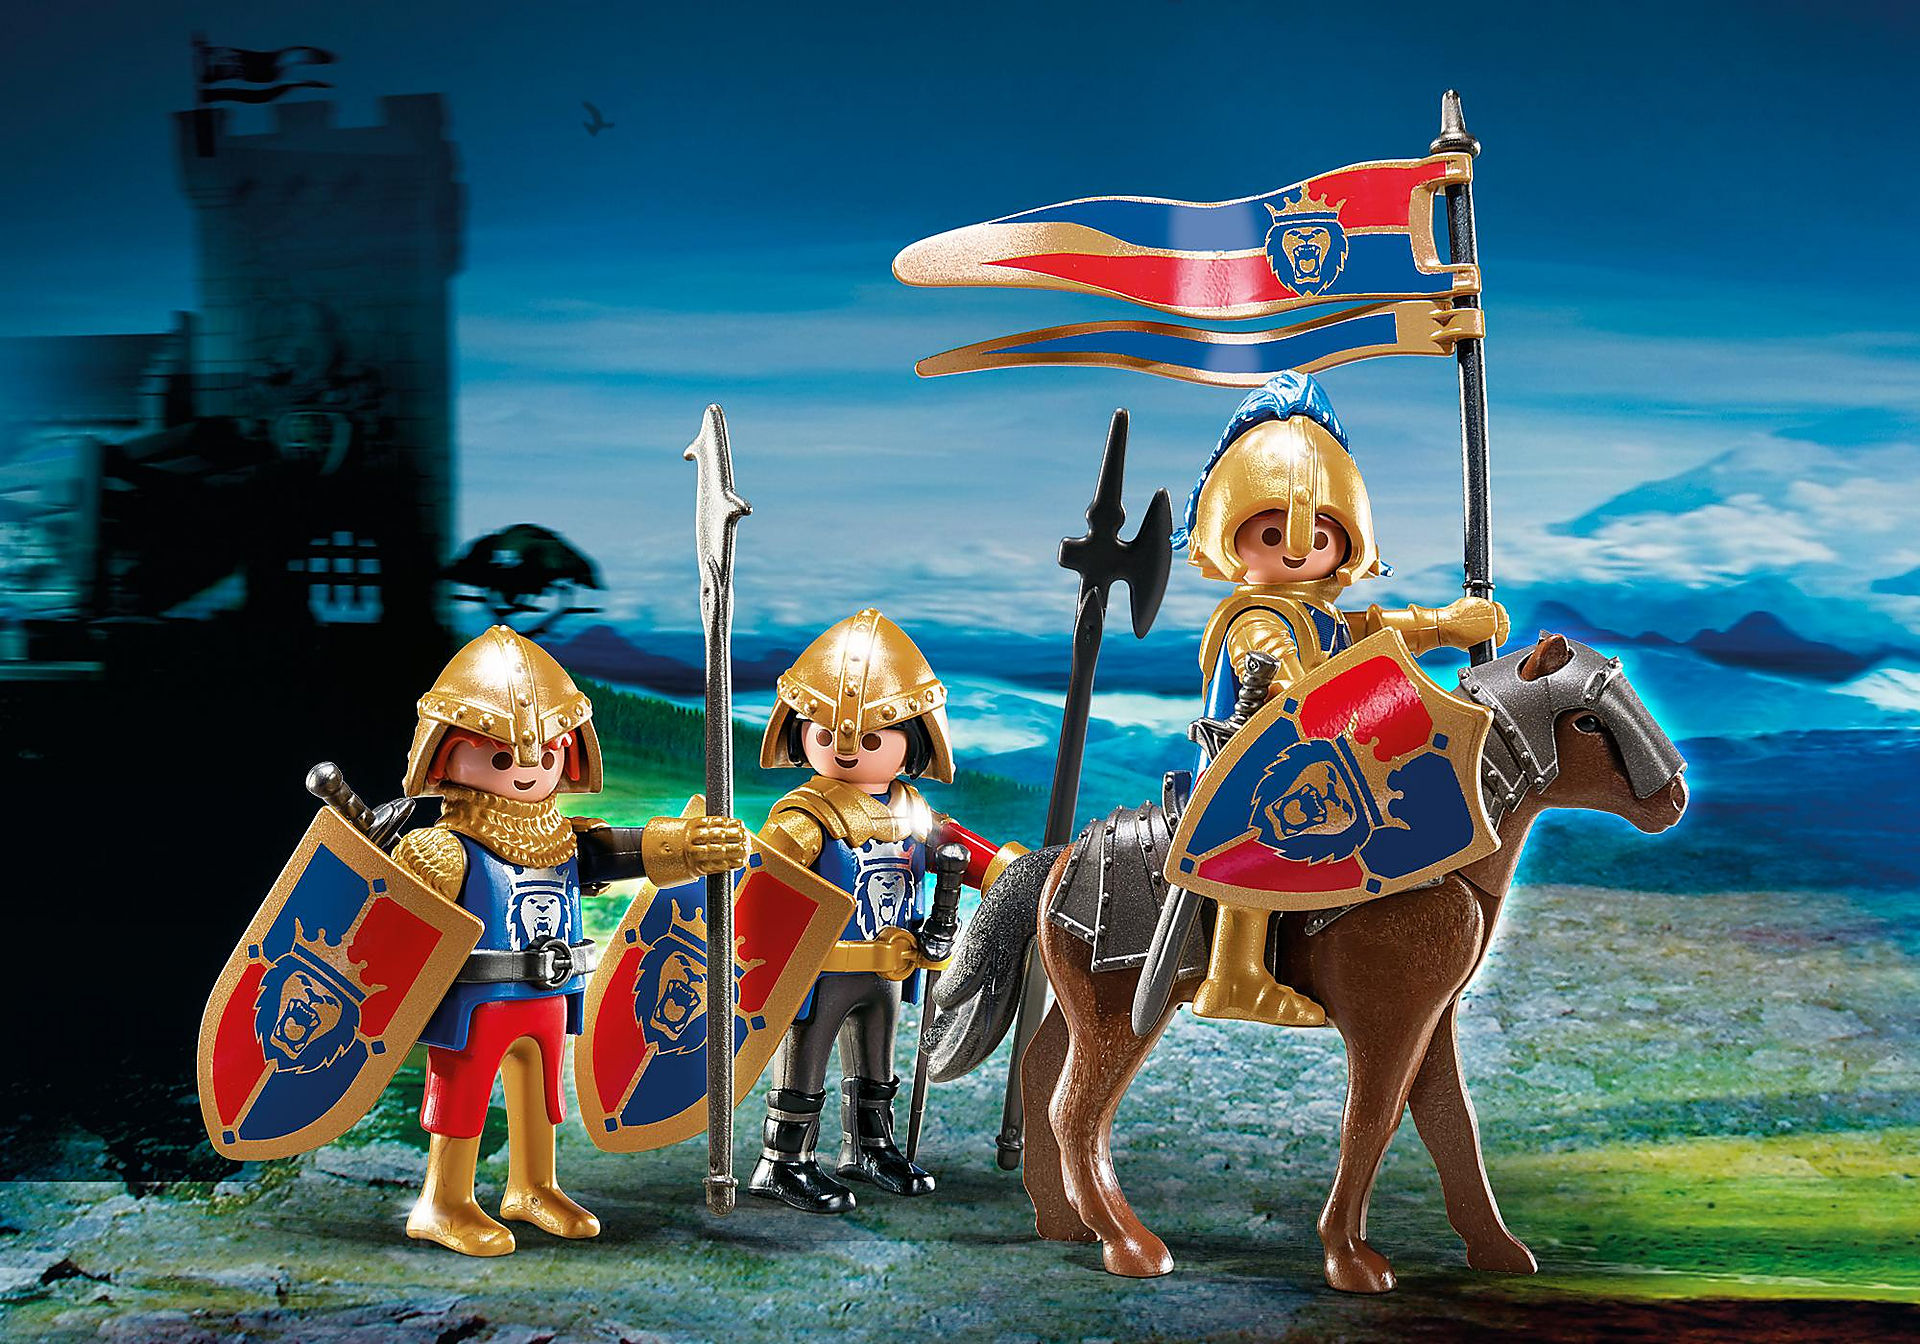 http://media.playmobil.com/i/playmobil/6006_product_detail/Royal Lion Knights